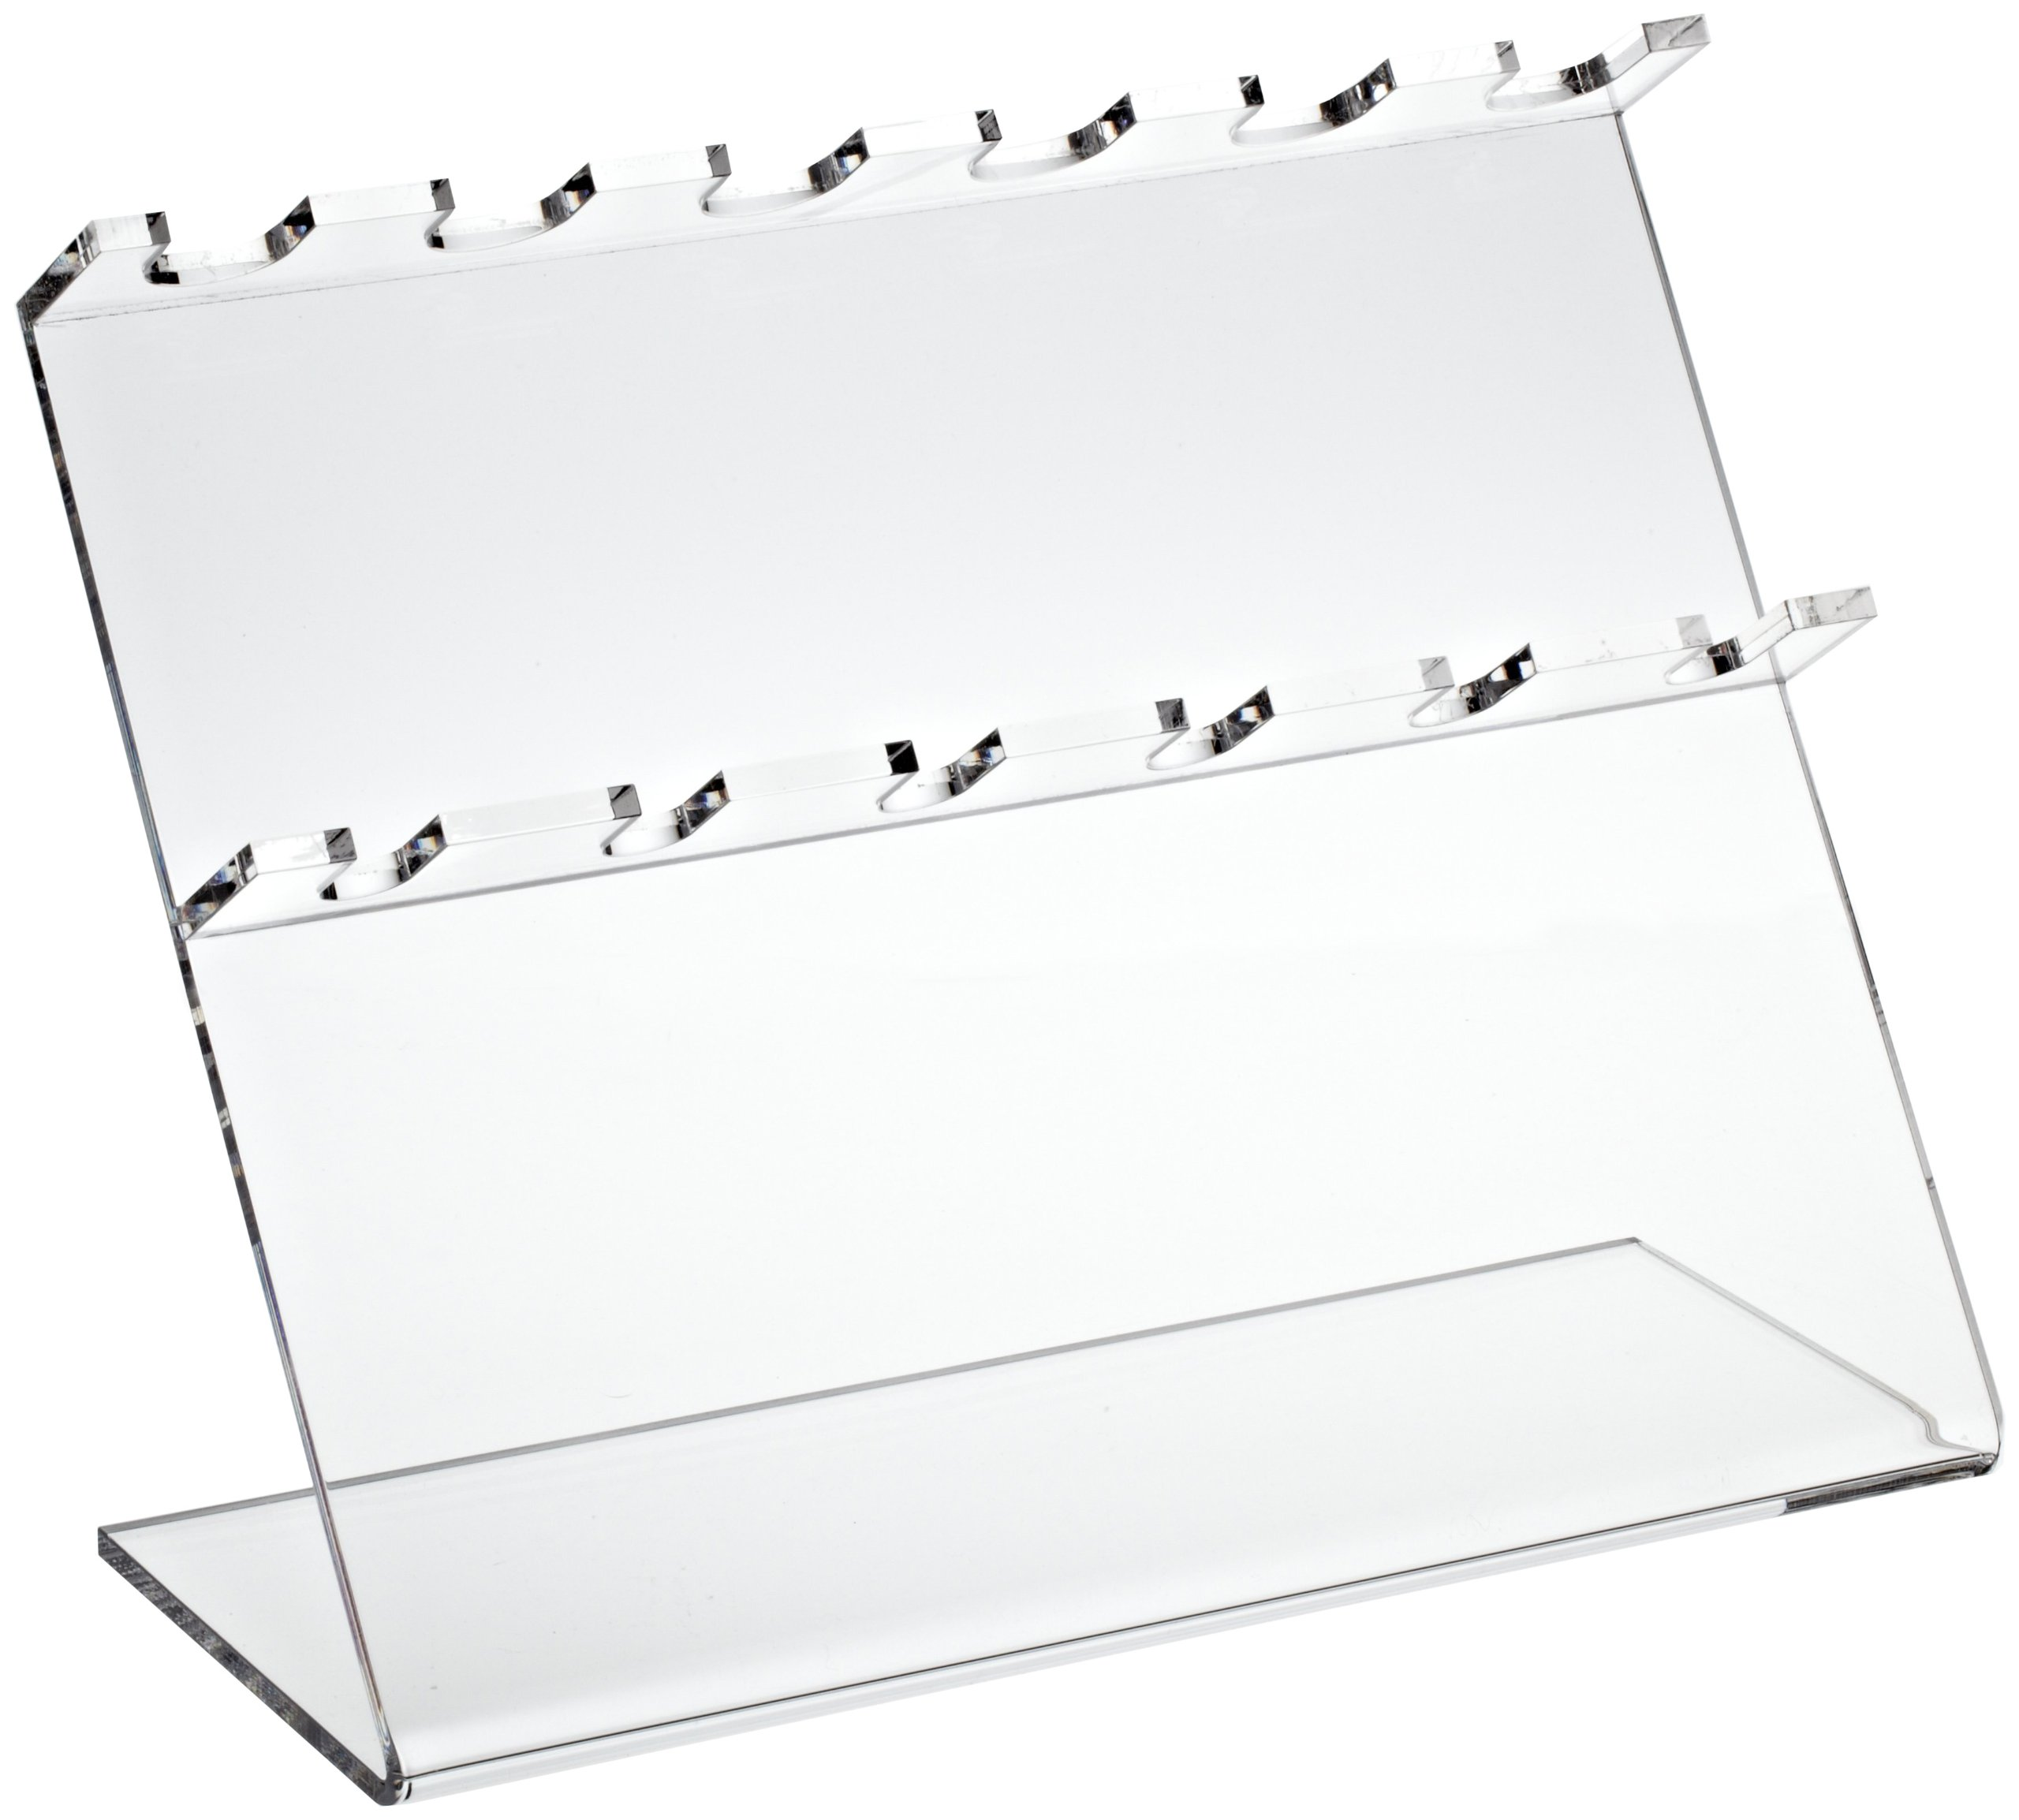 Bel-Art Pipettor Stand; 6 Places, 12 x 5 x 9½ in., Acrylic (F18961-0060)